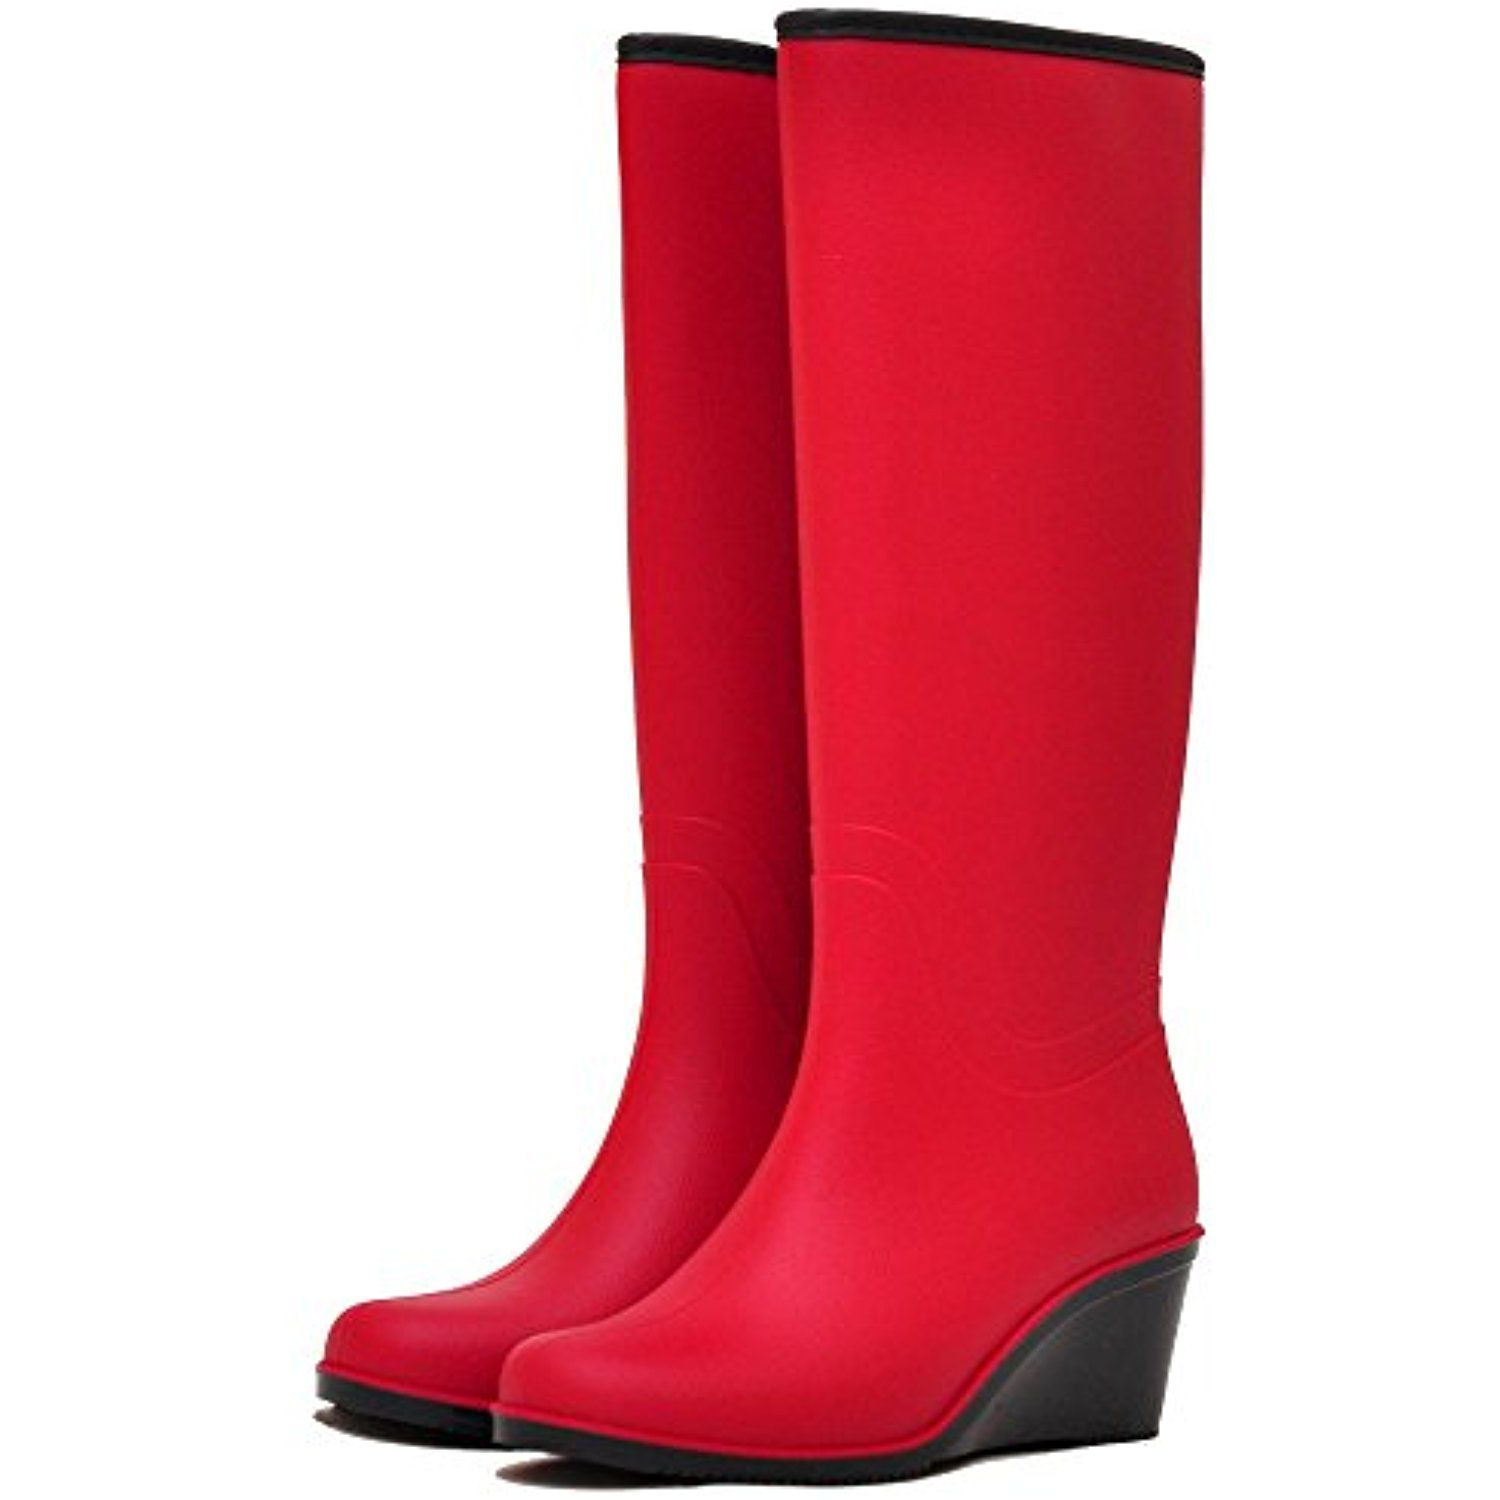 Women's Fur Waterproof Rain Boots NORDMAN BELLINA Wedge Heel